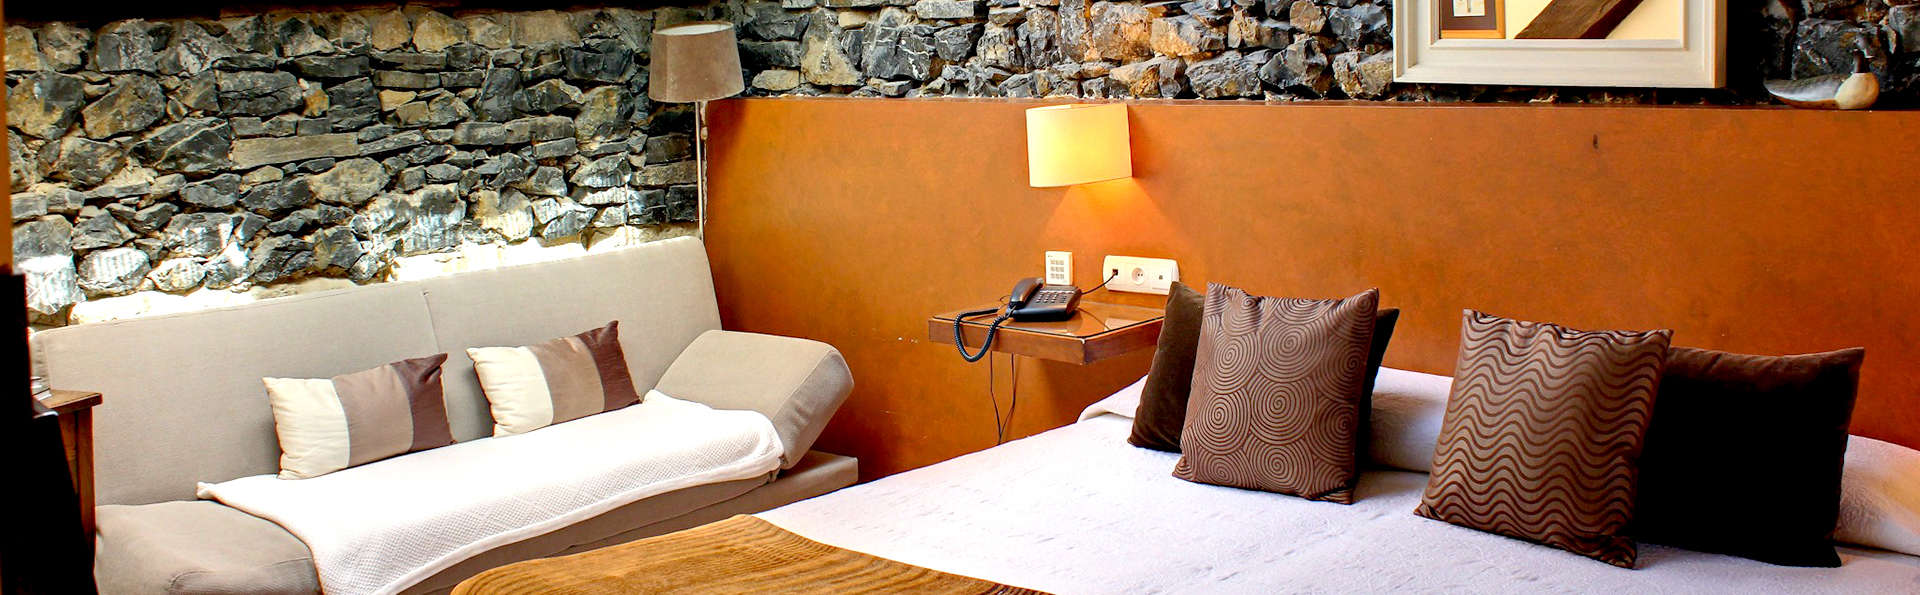 Hotel Mar del Sueve - Edit_Room4.jpg